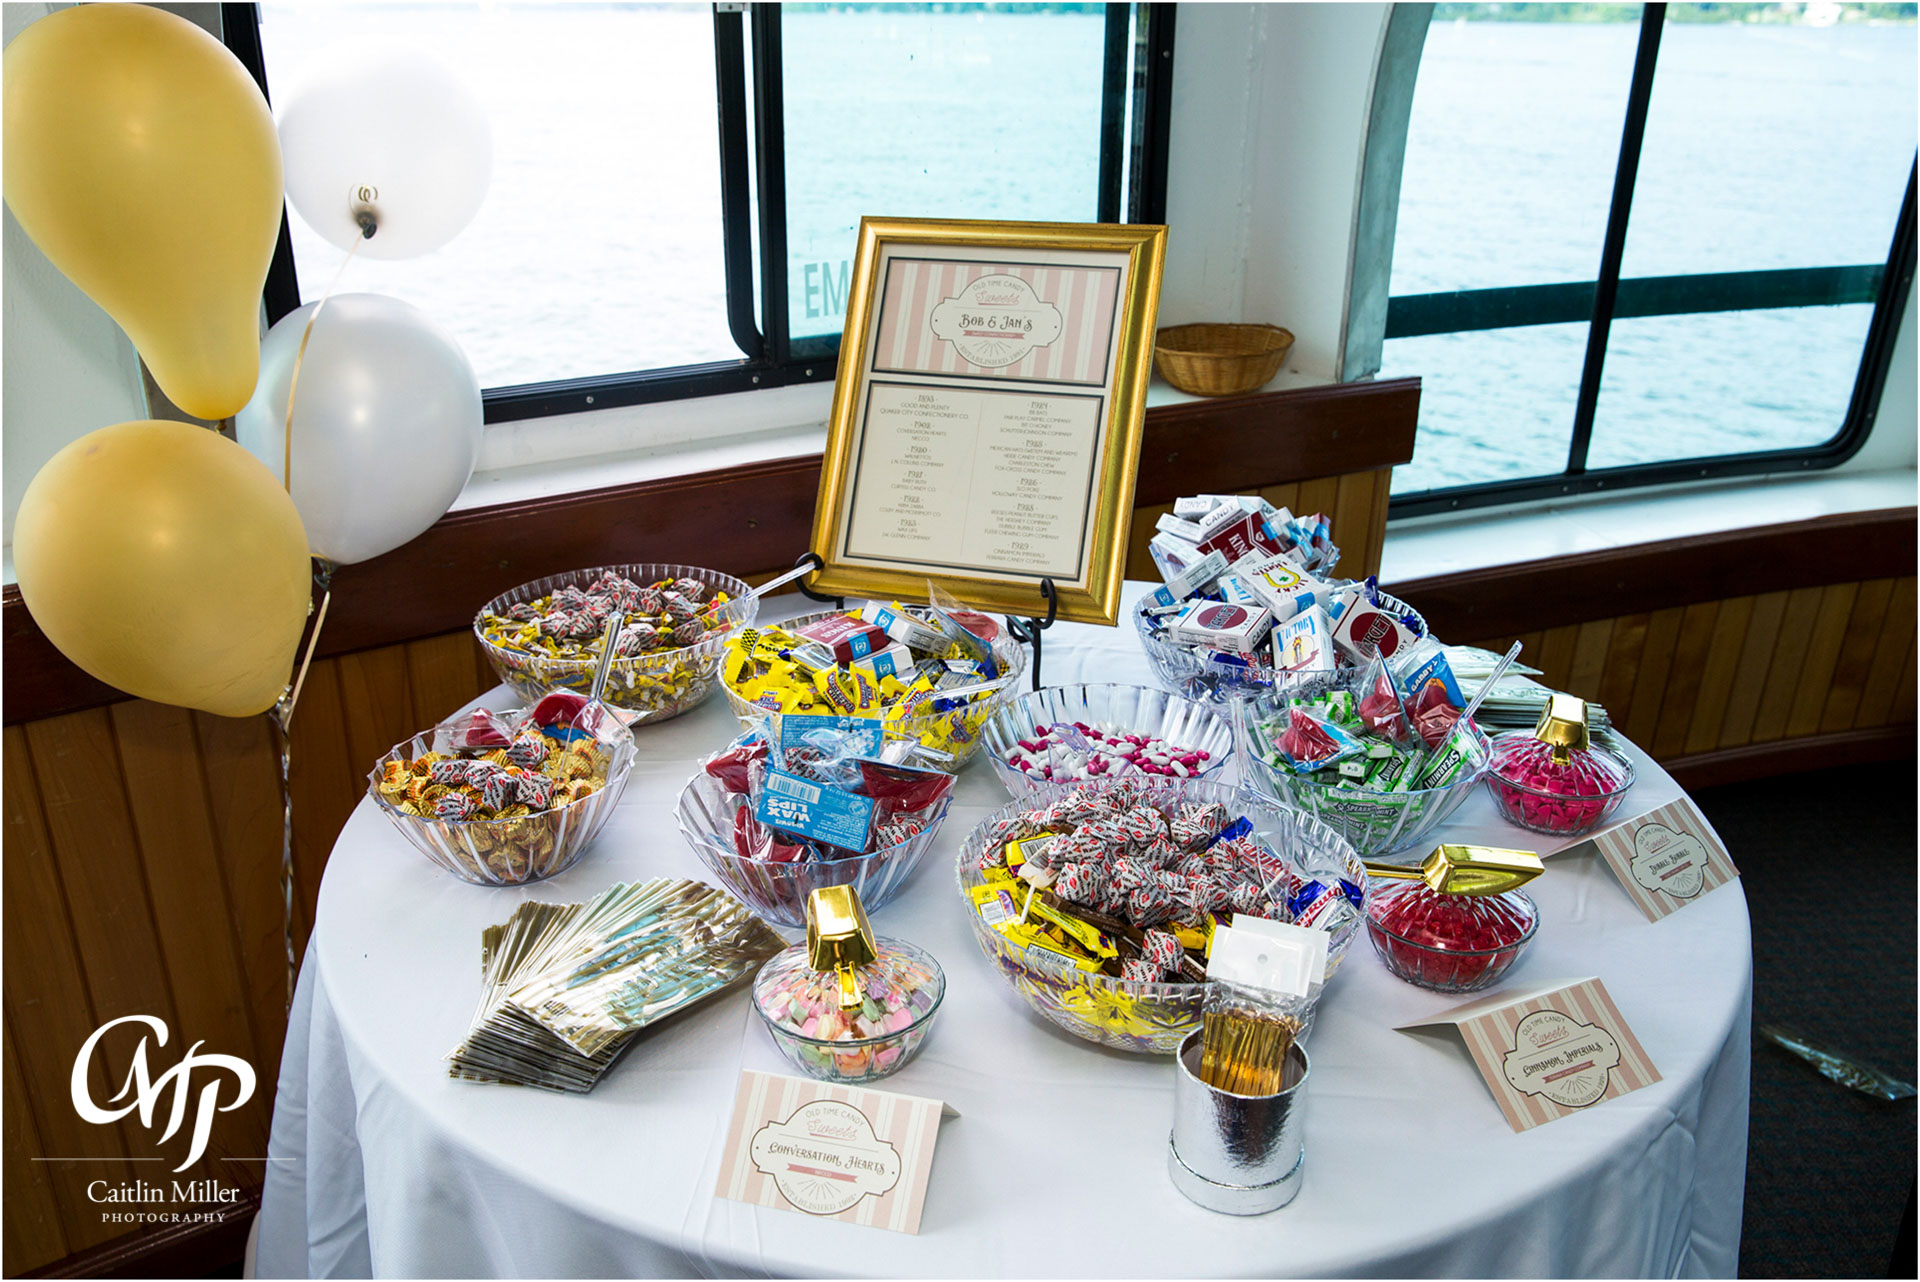 bombard-8.jpg from Jan and Robert's vow renewal on shoreline Cruise's Adirondac Boat on Lake George, NY by Saratoga Wedding Photographer Caitlin Miller Photography. Lake George Wedding Photographer. Stamford wedding photographer. Albany wedding photographer. Shoreline Cruises Wedding Photographer. Saratoga Wedding Photographer